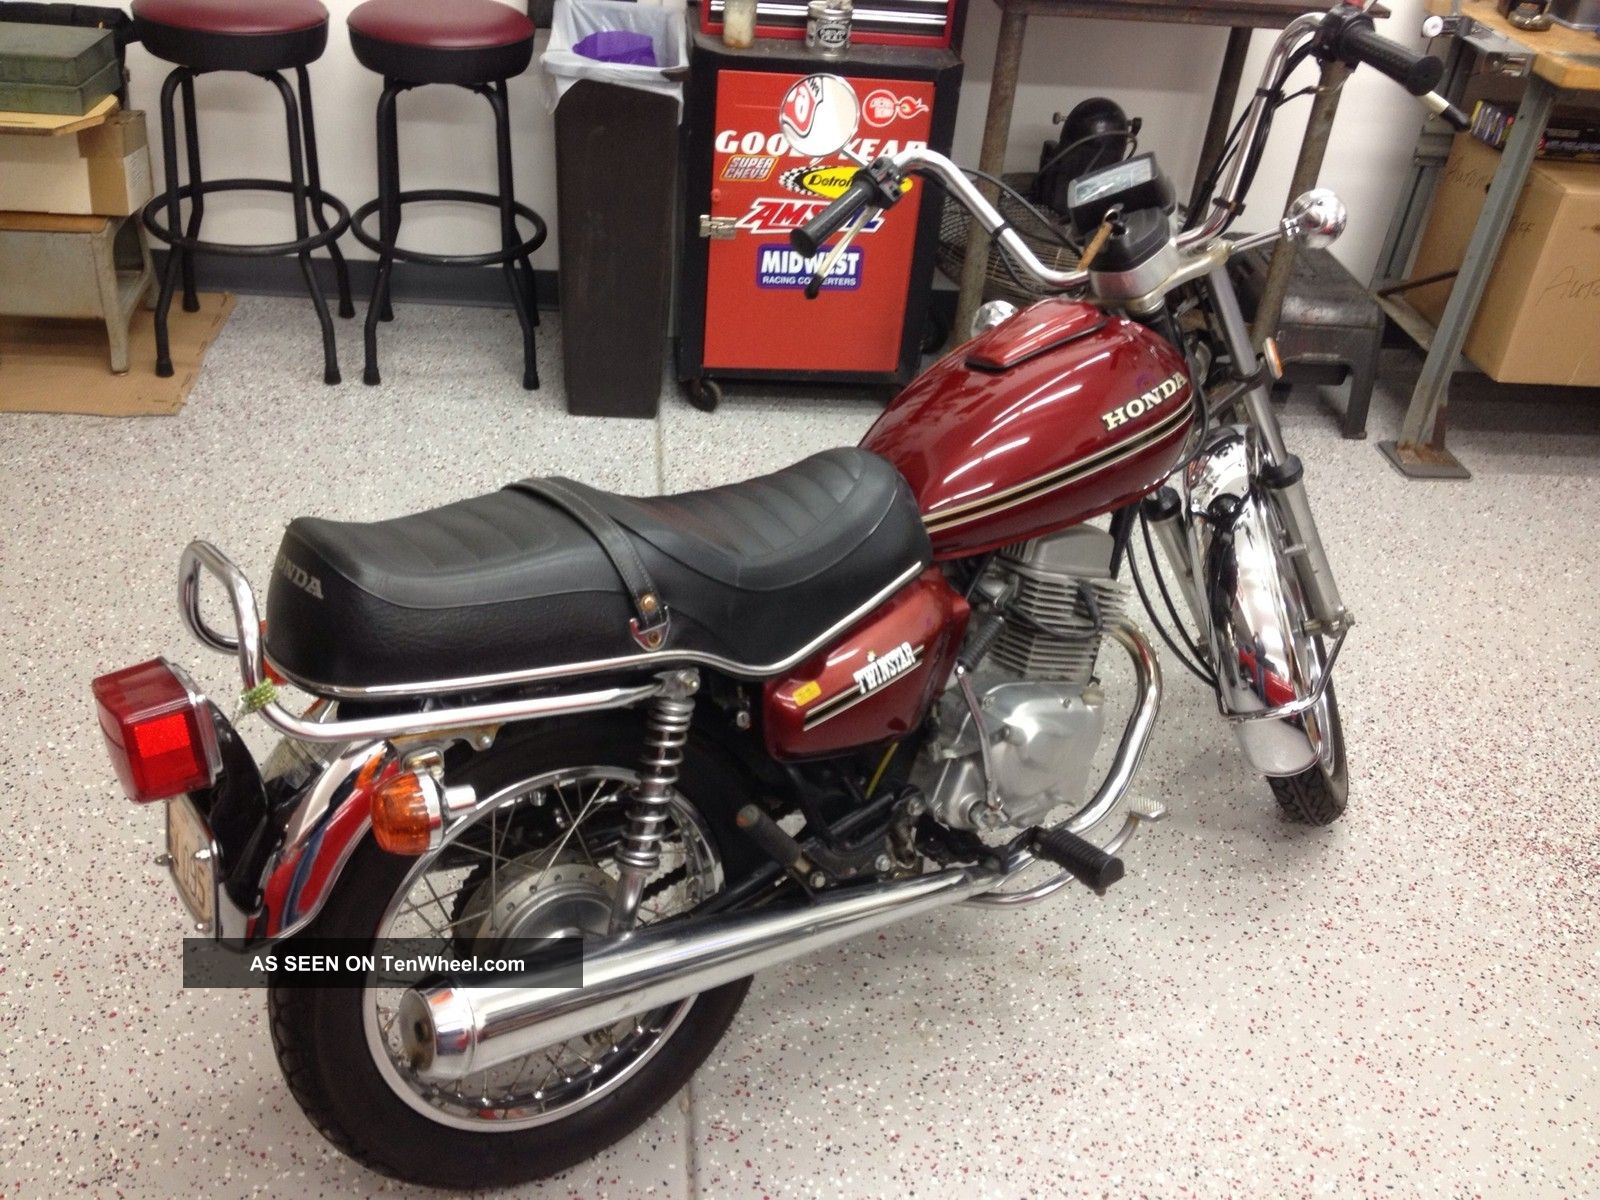 1978 Honda Cm 185 Twin Star Motorcycle Other photo